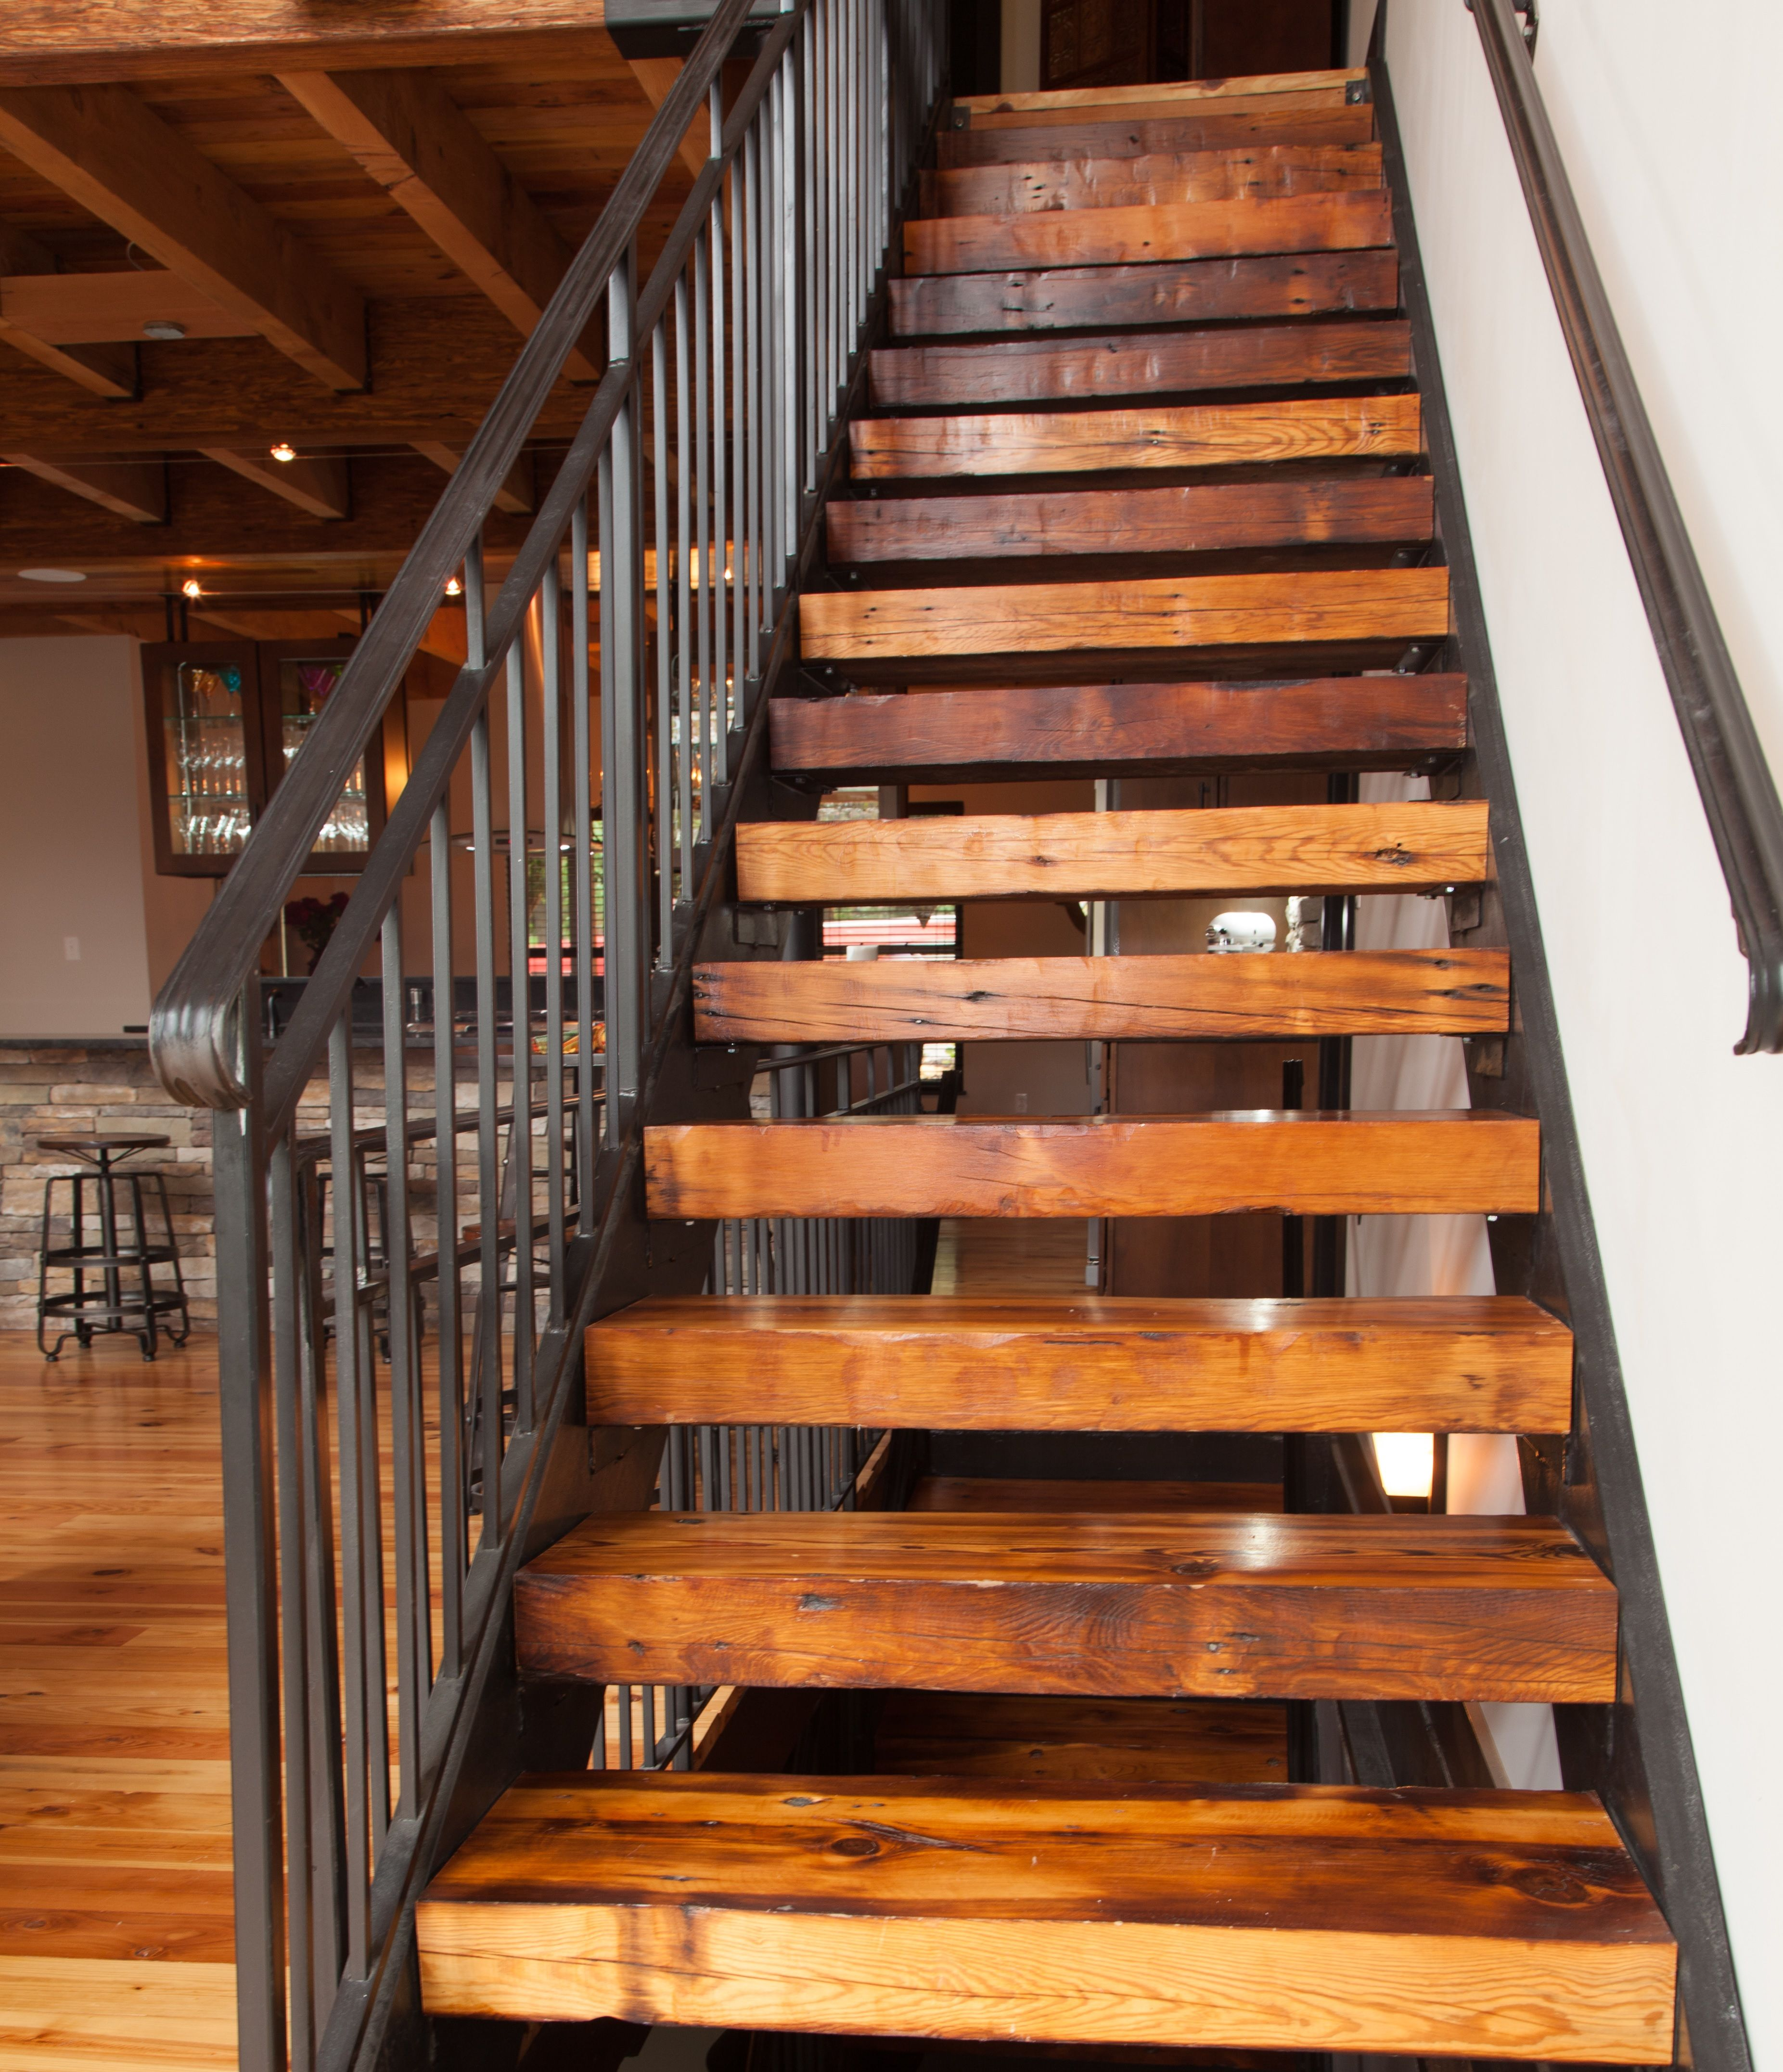 Wooden Staircases: Stairs To Loft: Wrought Iron Railing, Repurposed Beams